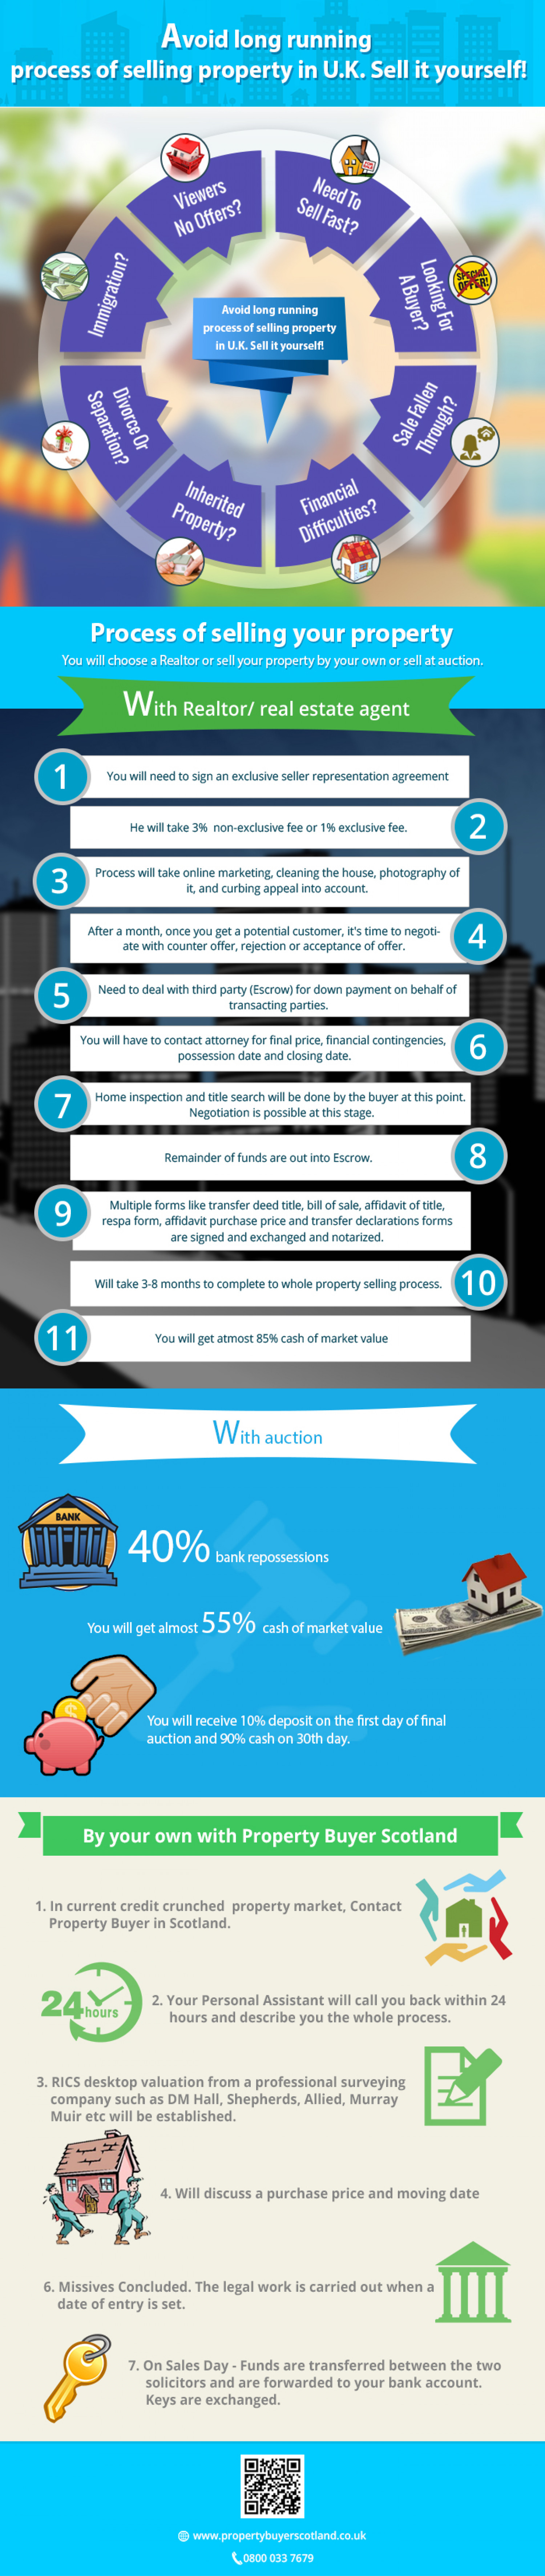 Avoid Long Running Process of Selling Property in U.K. Sell it Yourself! Infographic